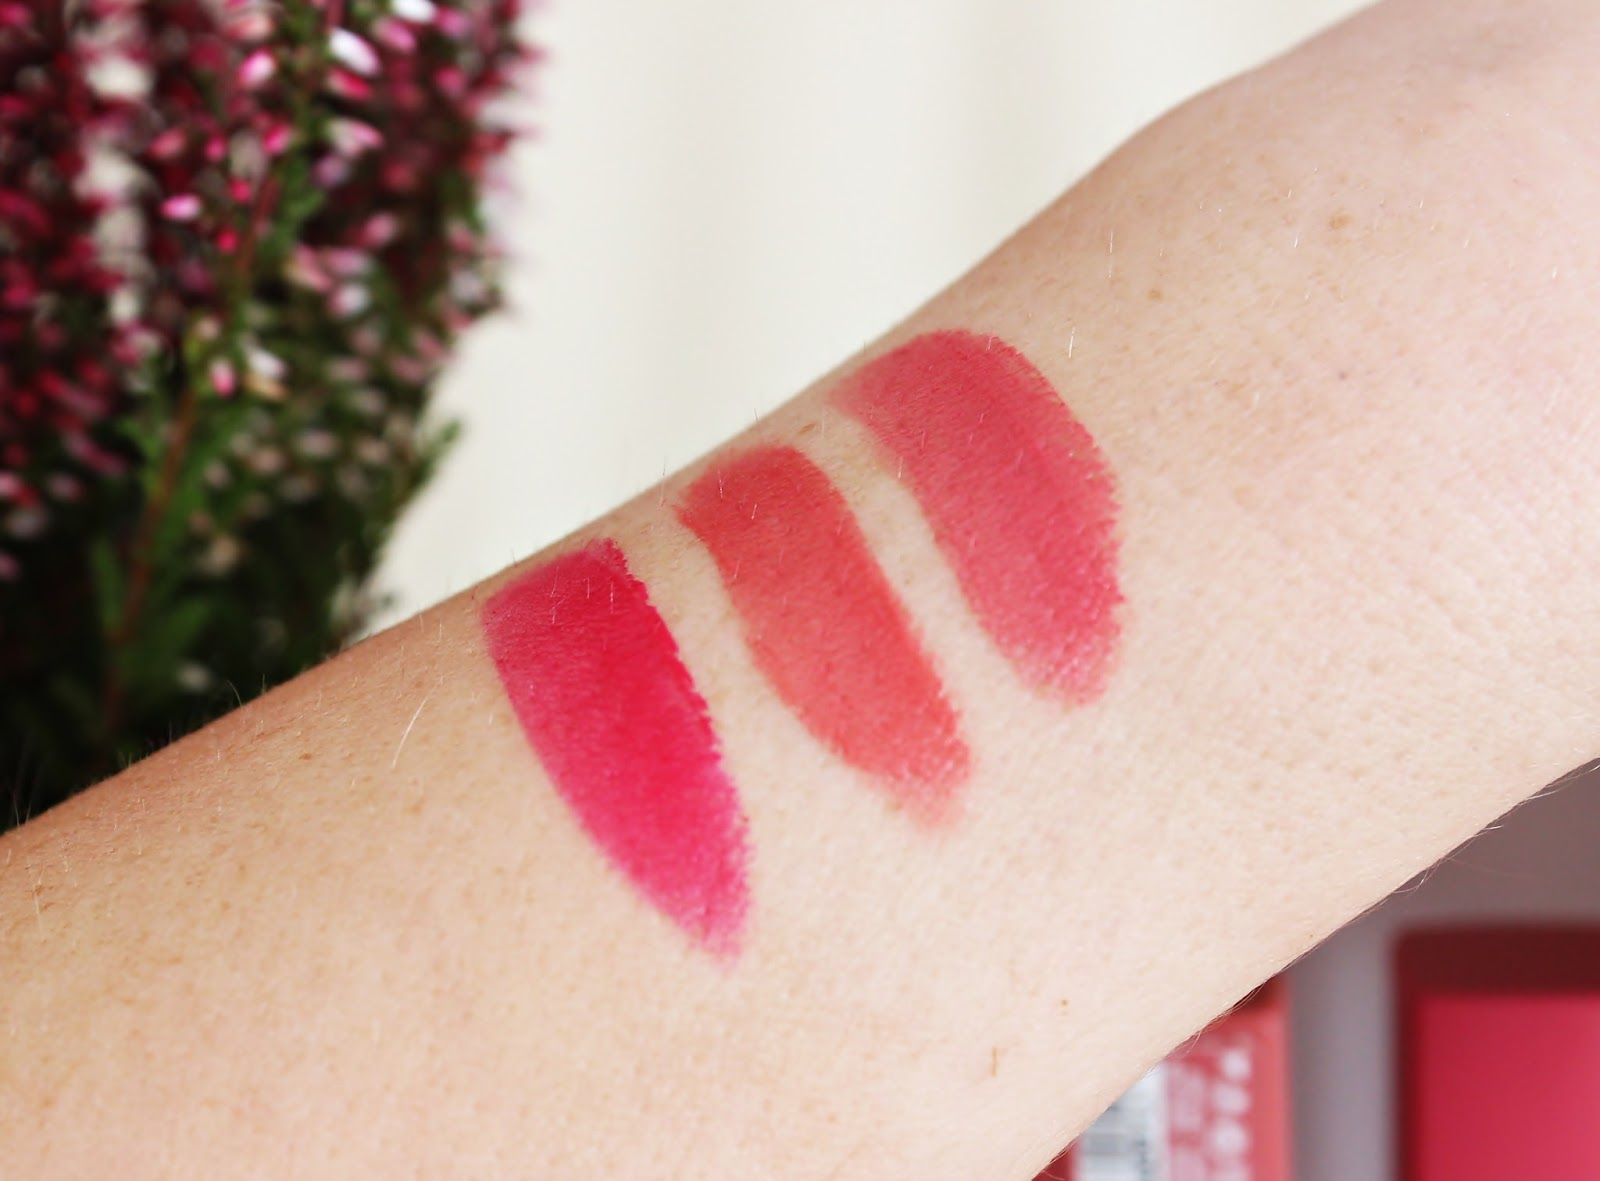 BOURJOIS, Rouge Edition Velvet - 05 Ole Flamingo!, 09 Happy Nude year, 11 So Hap'pink